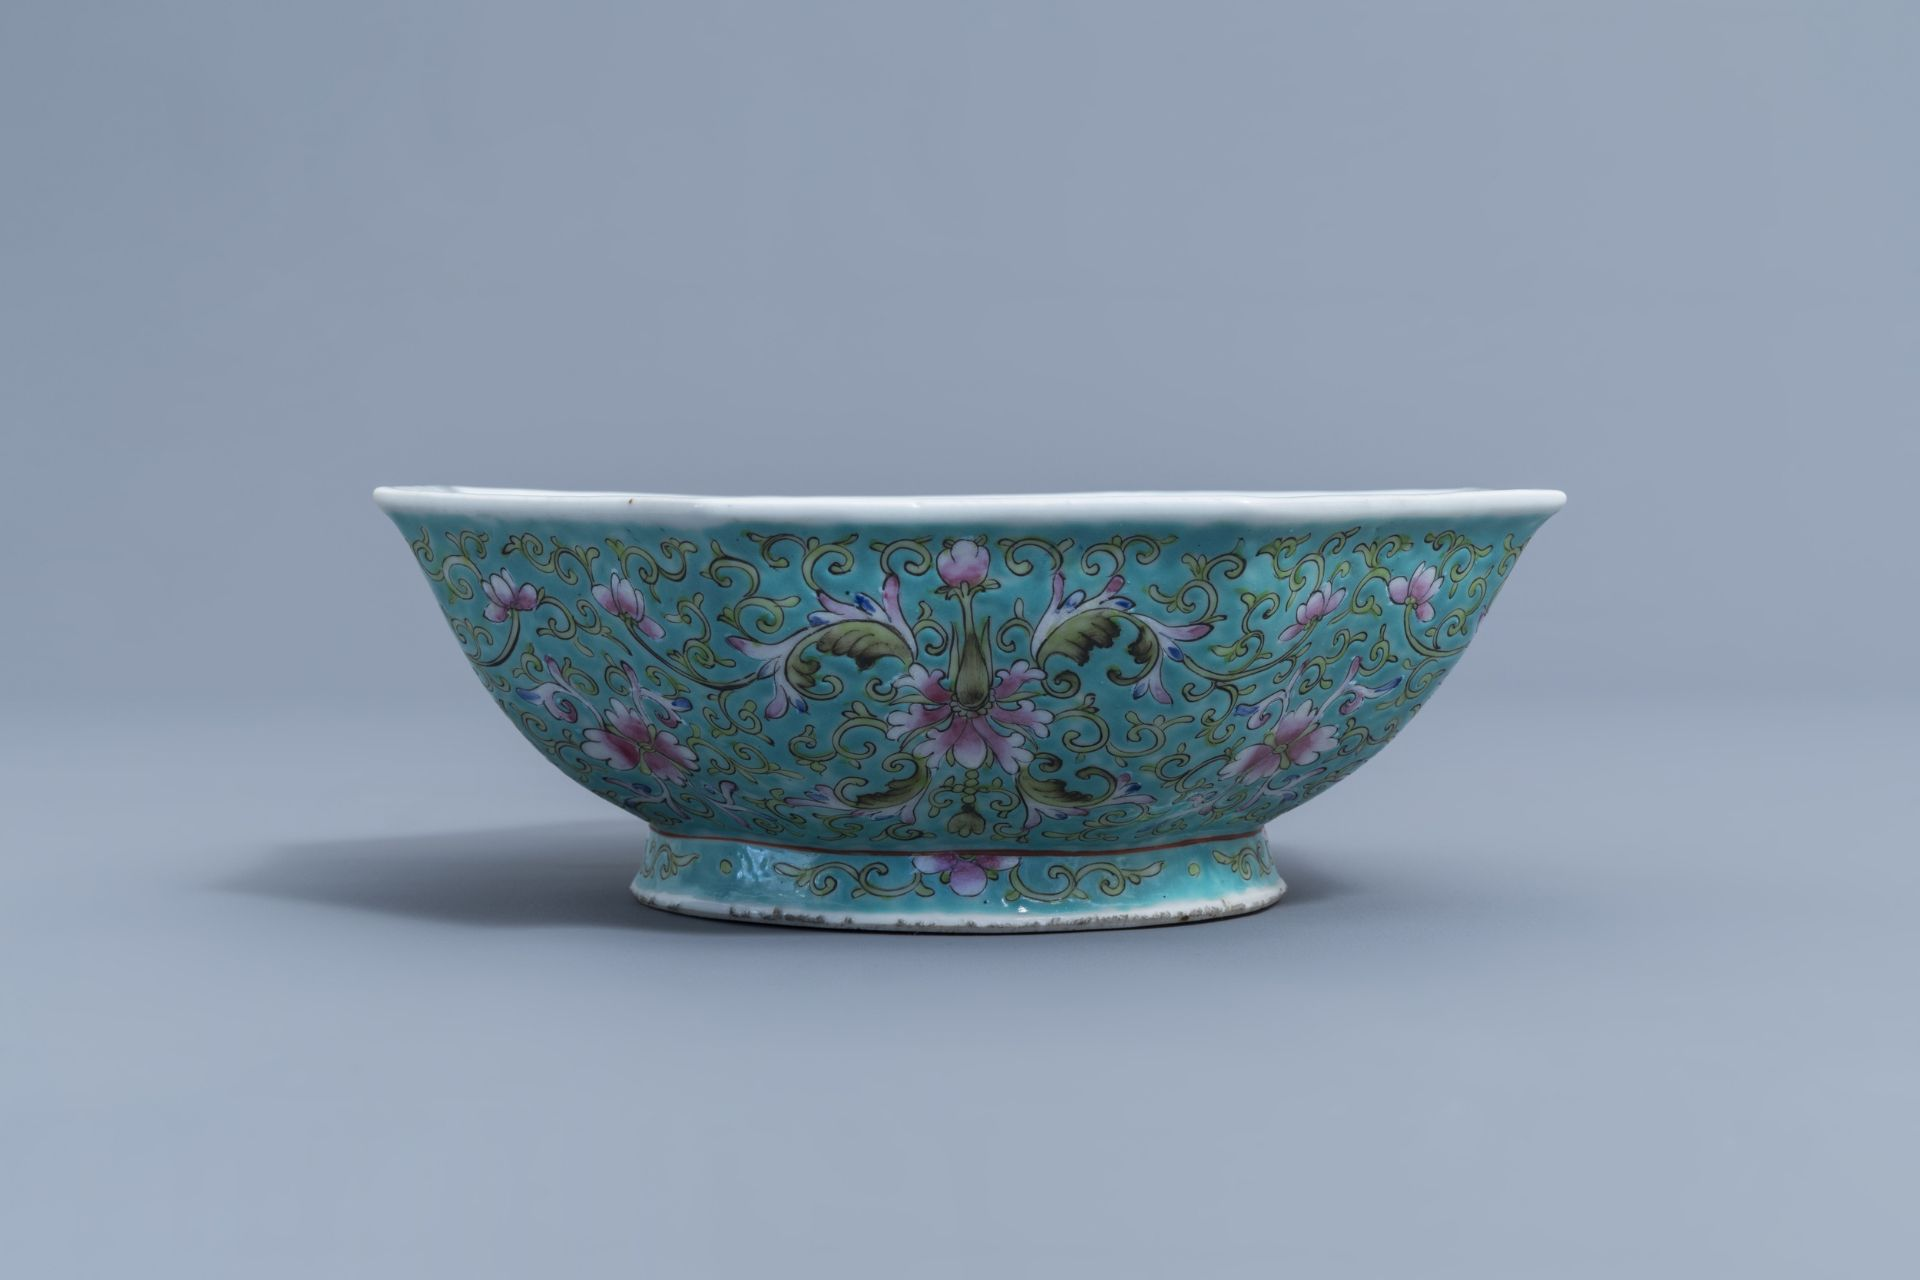 Two Chinese famille rose jardinires and a bowl with floral design, 20th C. - Image 11 of 15